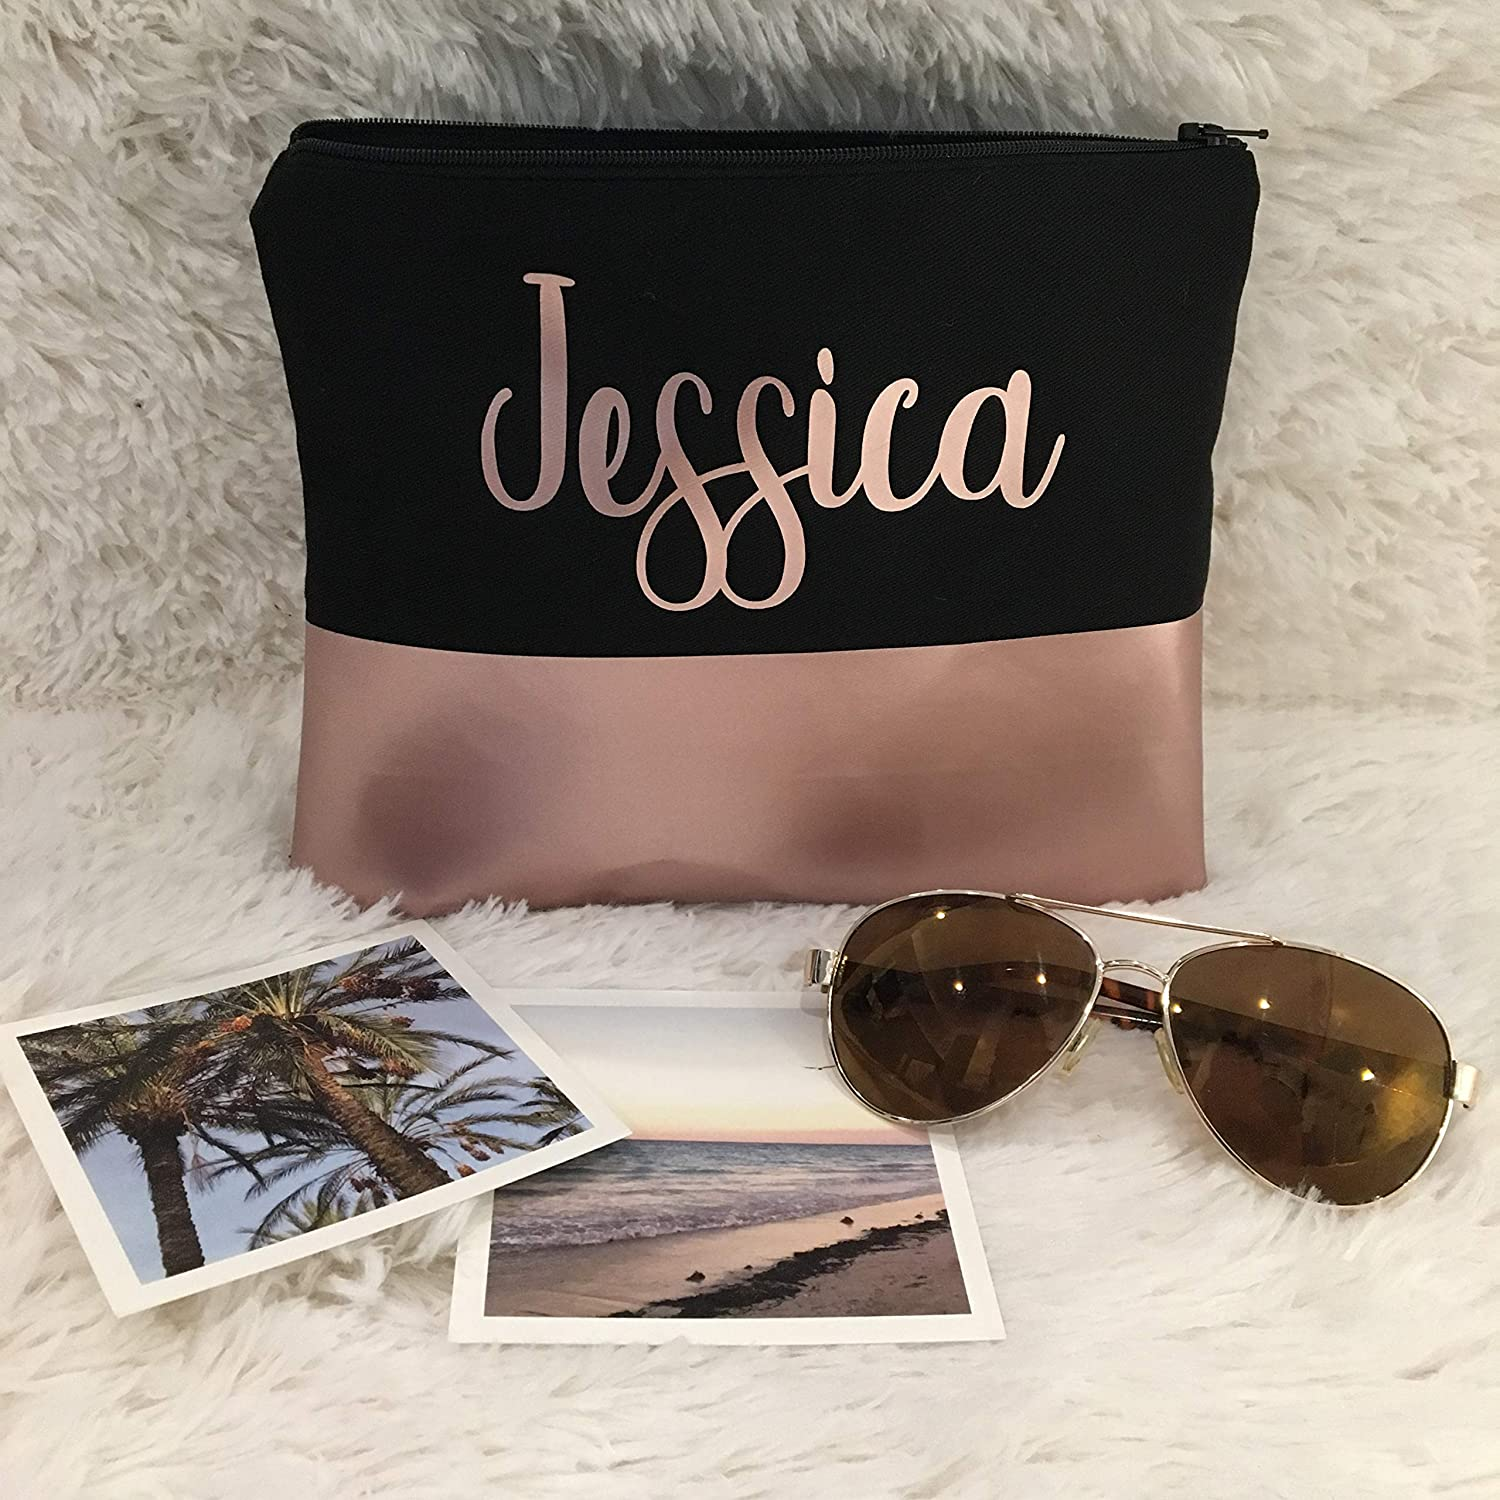 Rose Gold Custom Name Makeup Bag | Bridesmaid Gift | Monogram Bag | Wedding | Toiletry Bag | Cosmetic Bag | Zipper Pouch | Edmonton, Alberta